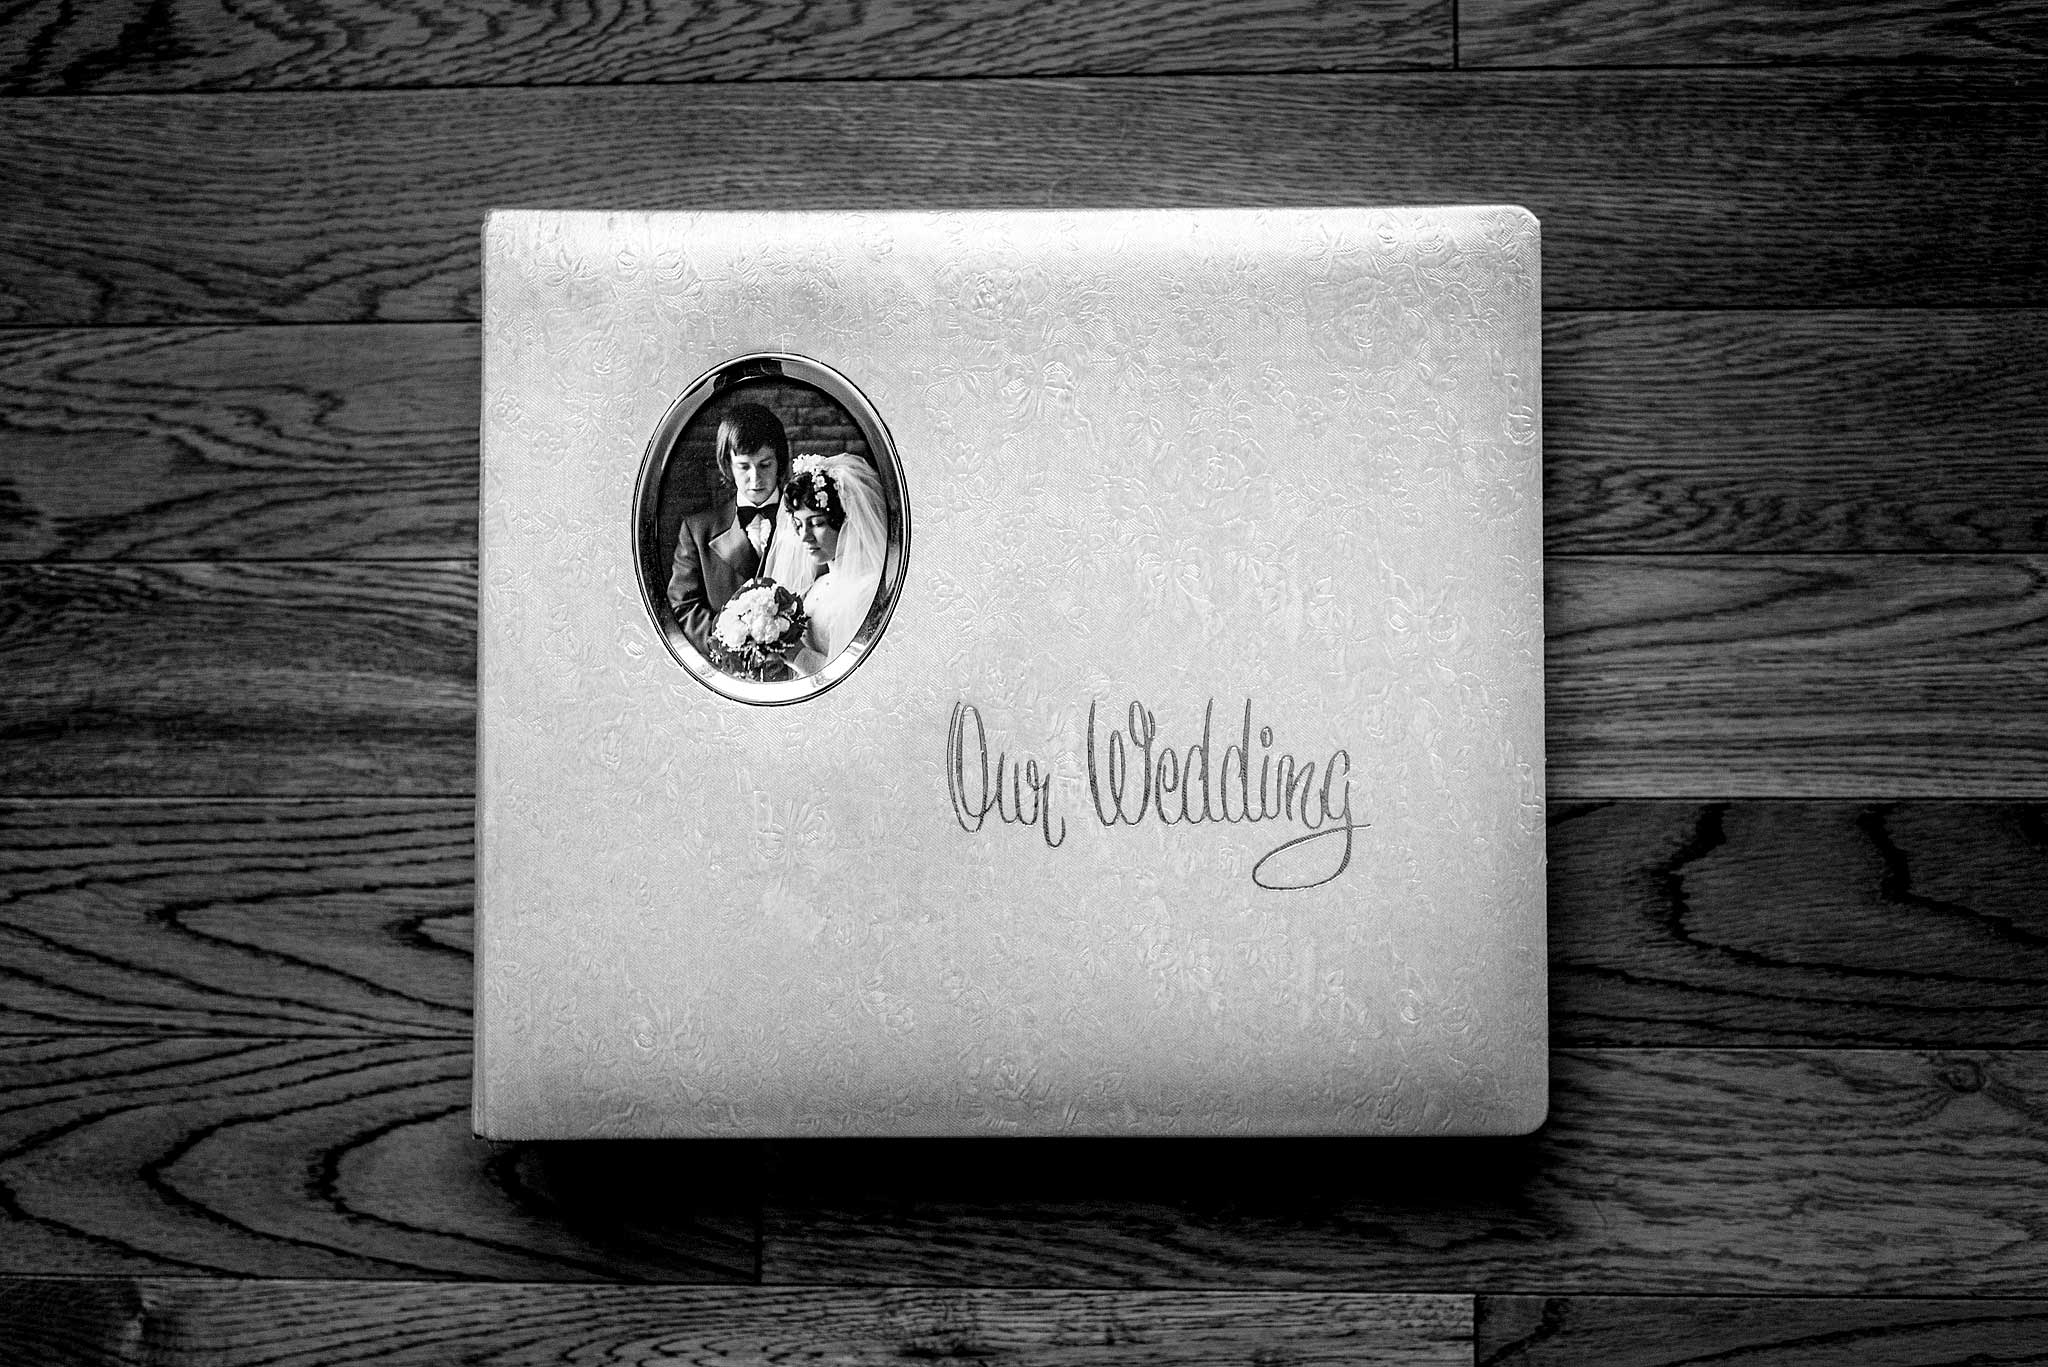 an old wedding album top wedding photographer sean leblanc